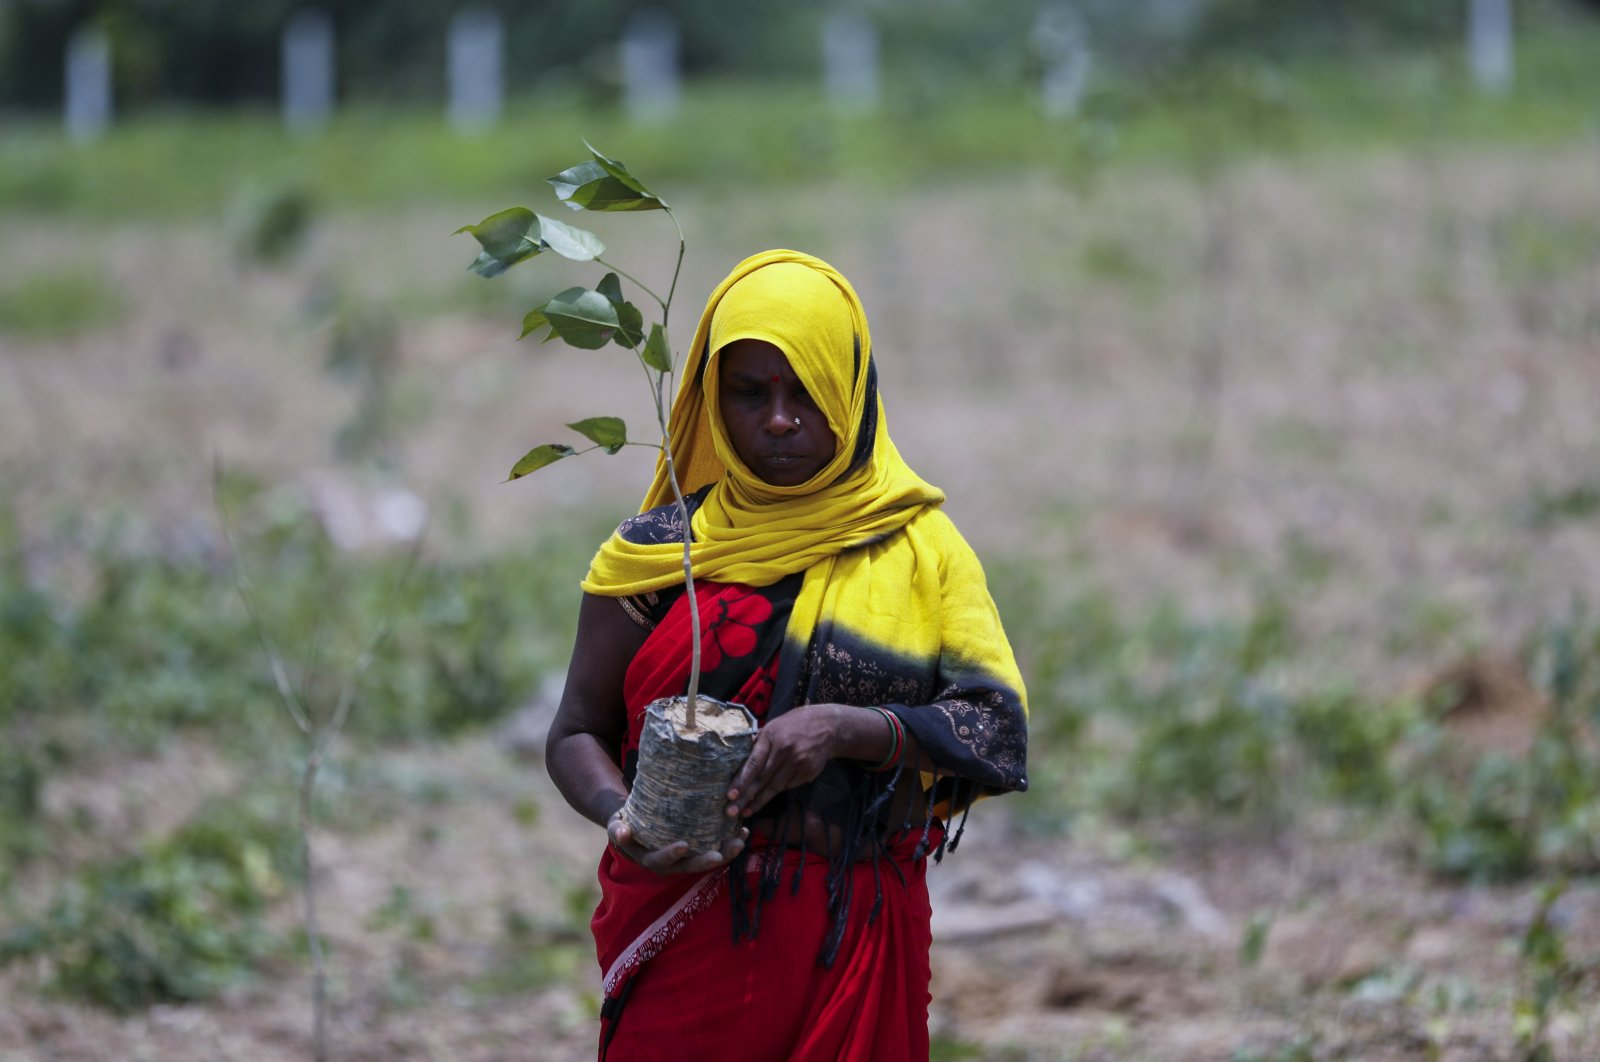 An Indian laborer prepares to plant saplings as part of an annual tree plantation campaign on the outskirts of Prayagraj, in northern Uttar Pradesh state, India, July 4, 2021. (AP Photo)